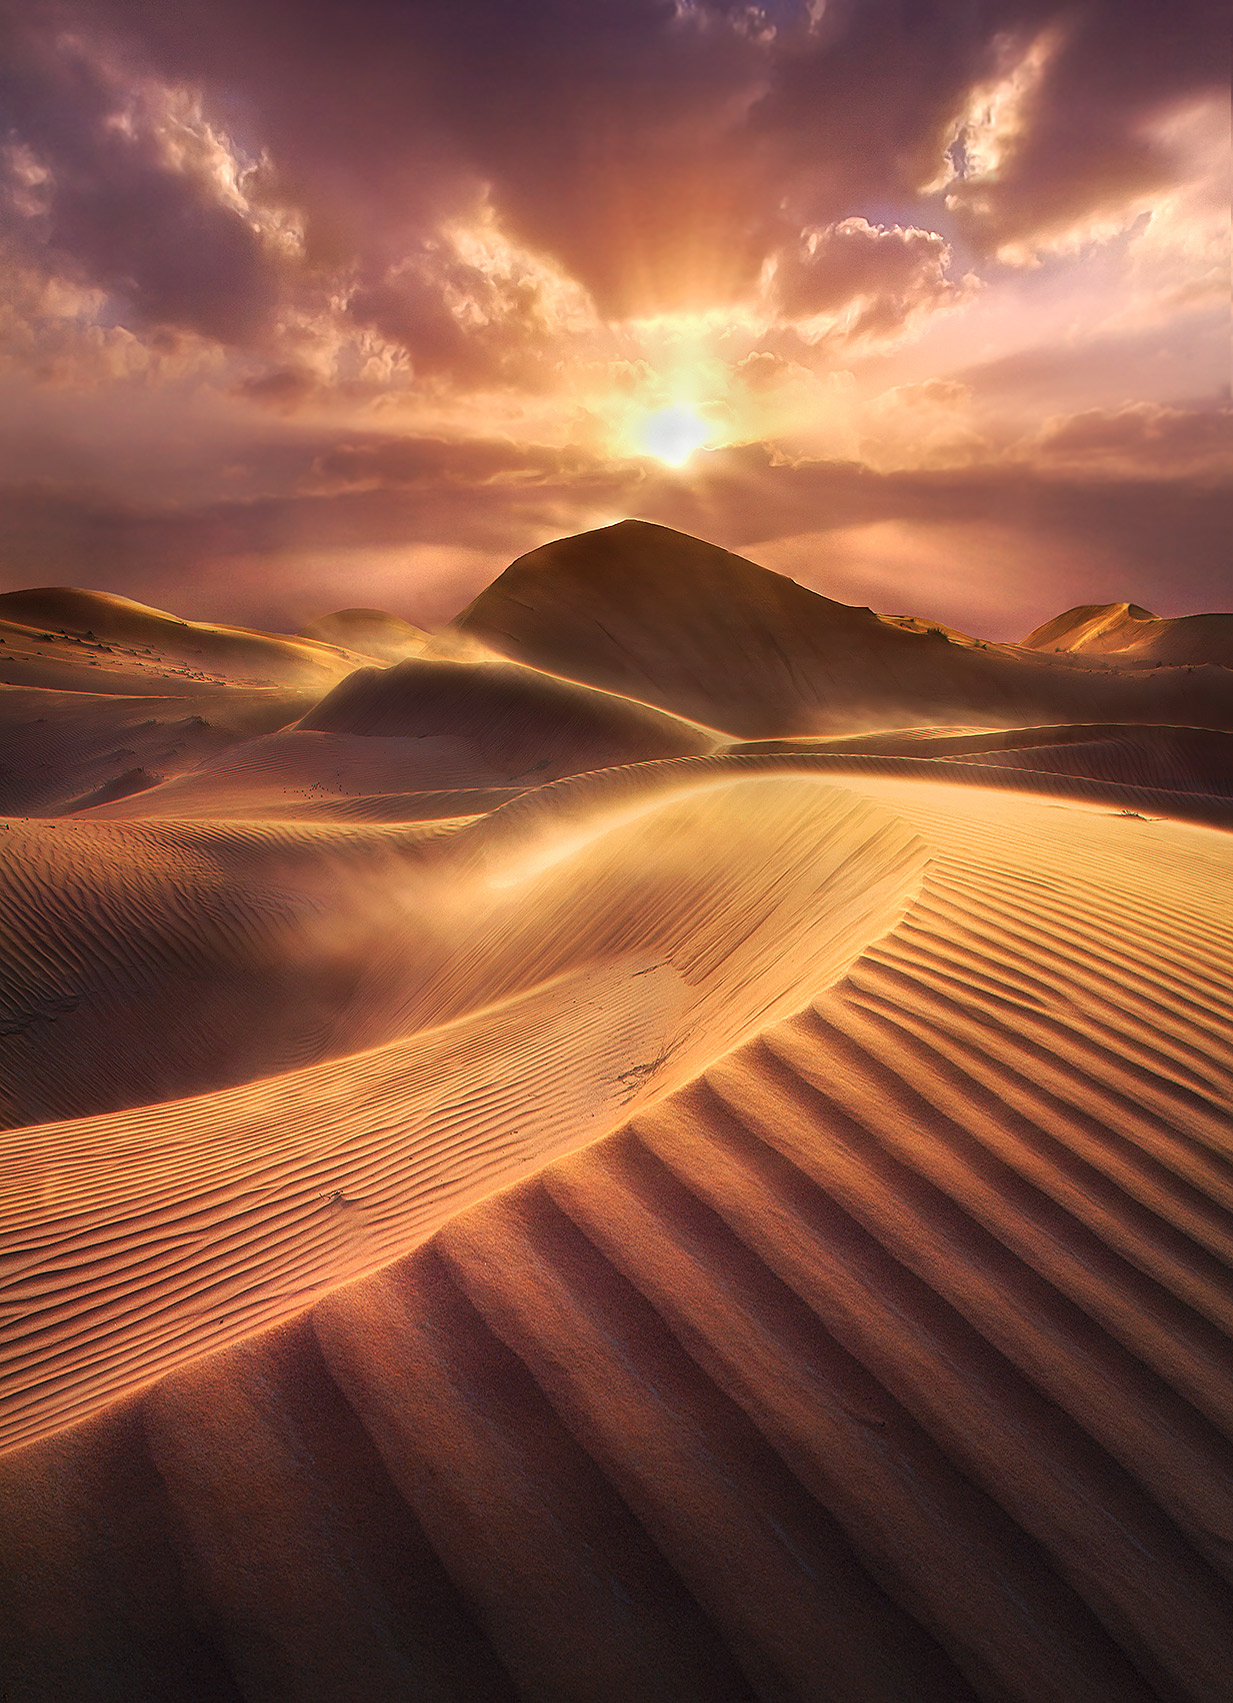 United Arab Emirates, Light, Vibrant, Beams, SUnset, windy, dunes, photo